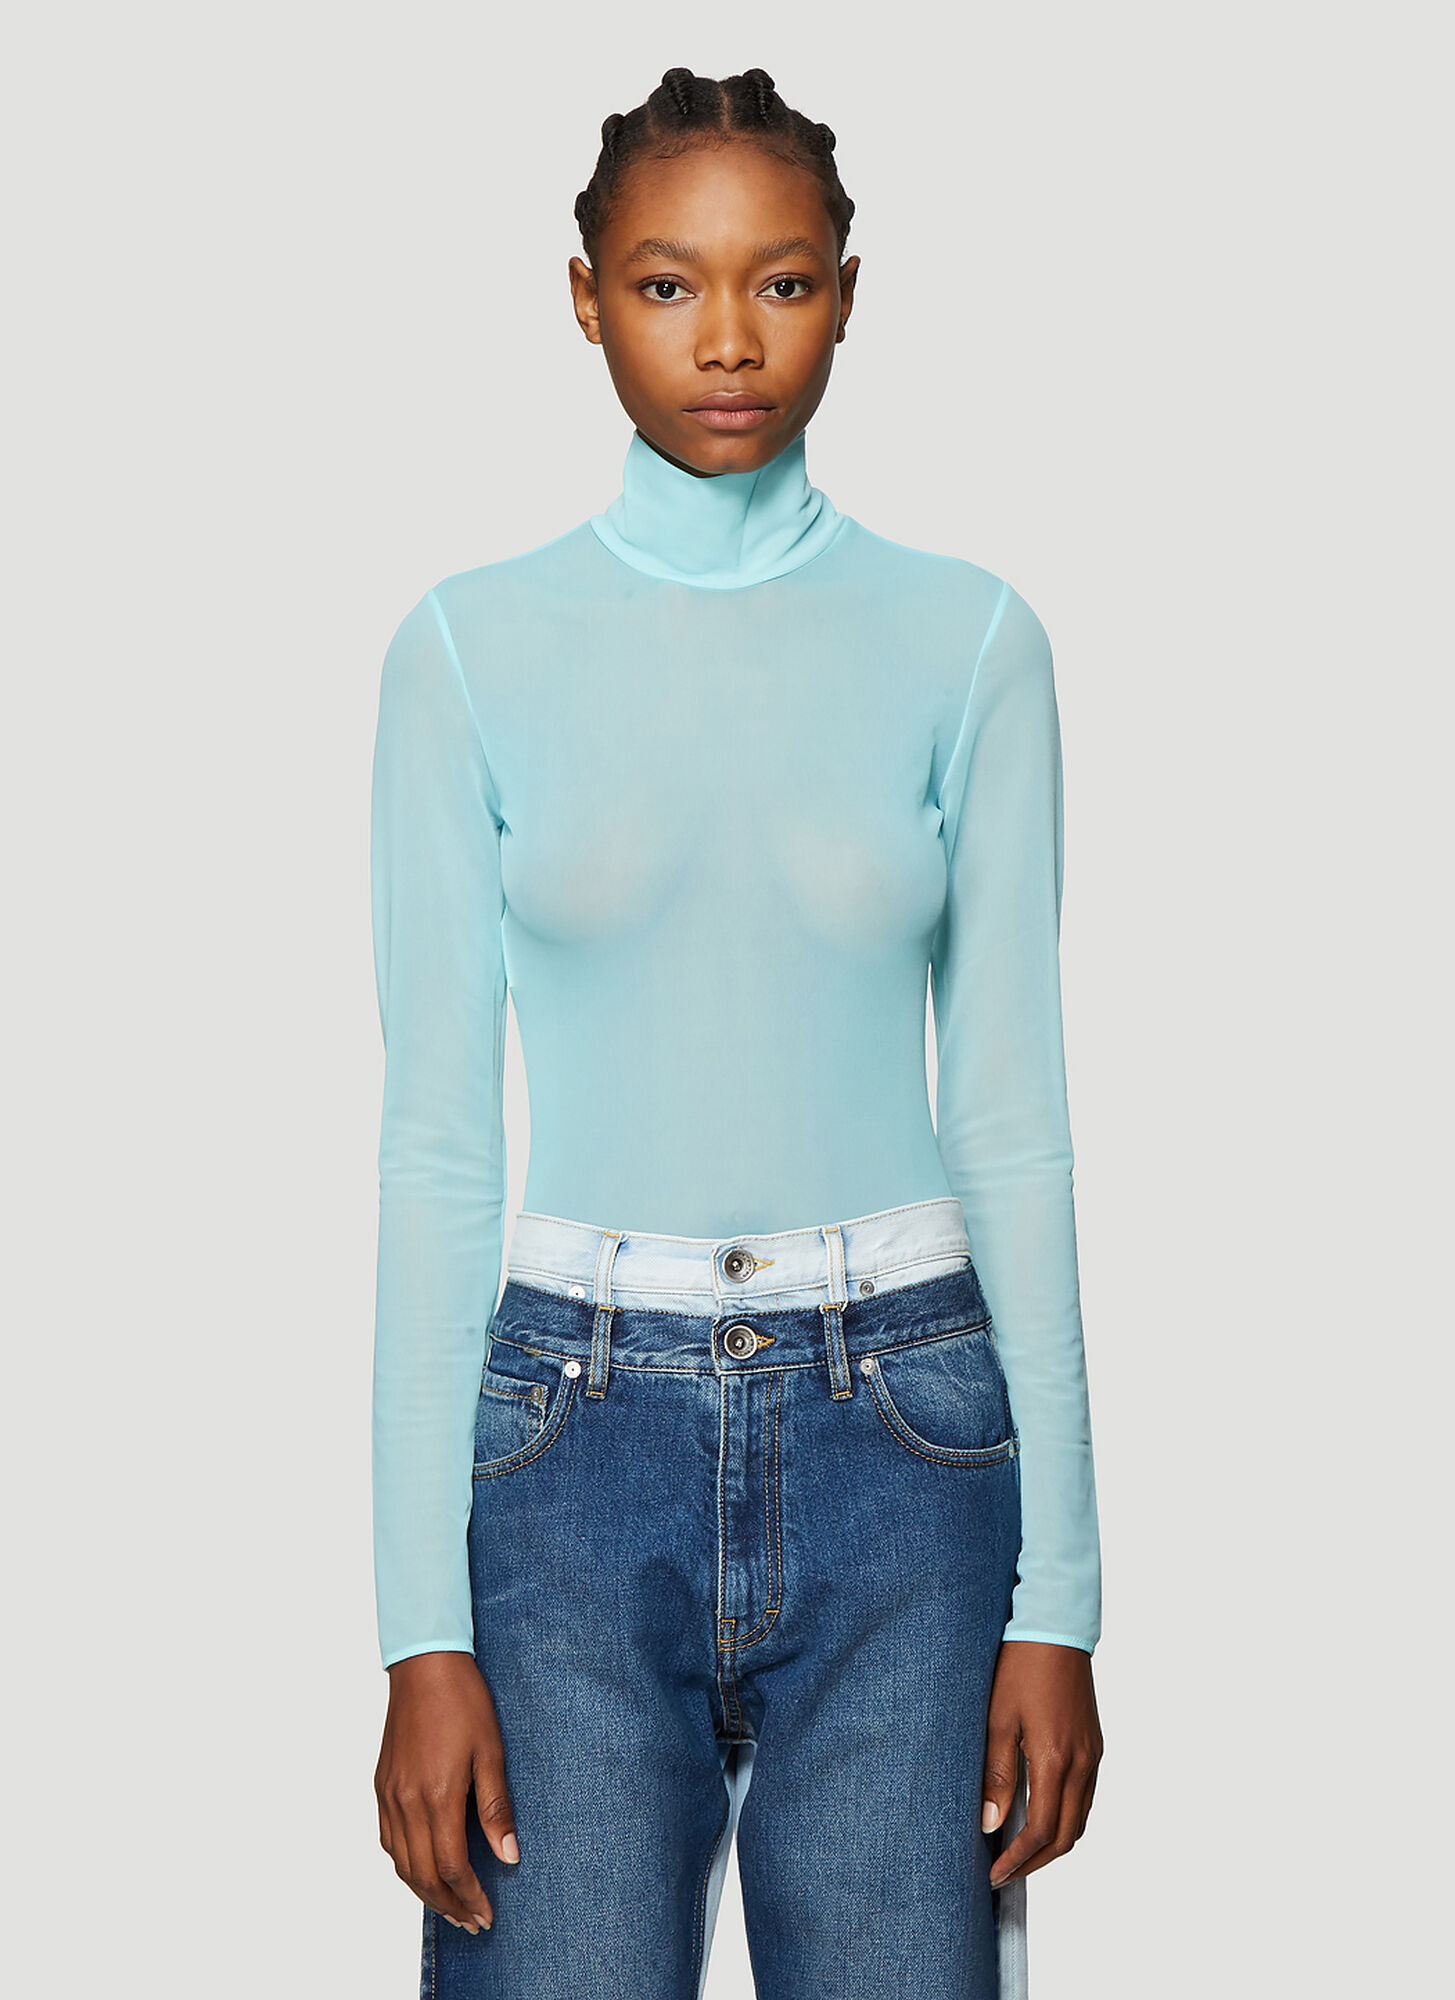 Maison Margiela Turtleneck Sheer Bodysuit in Blue